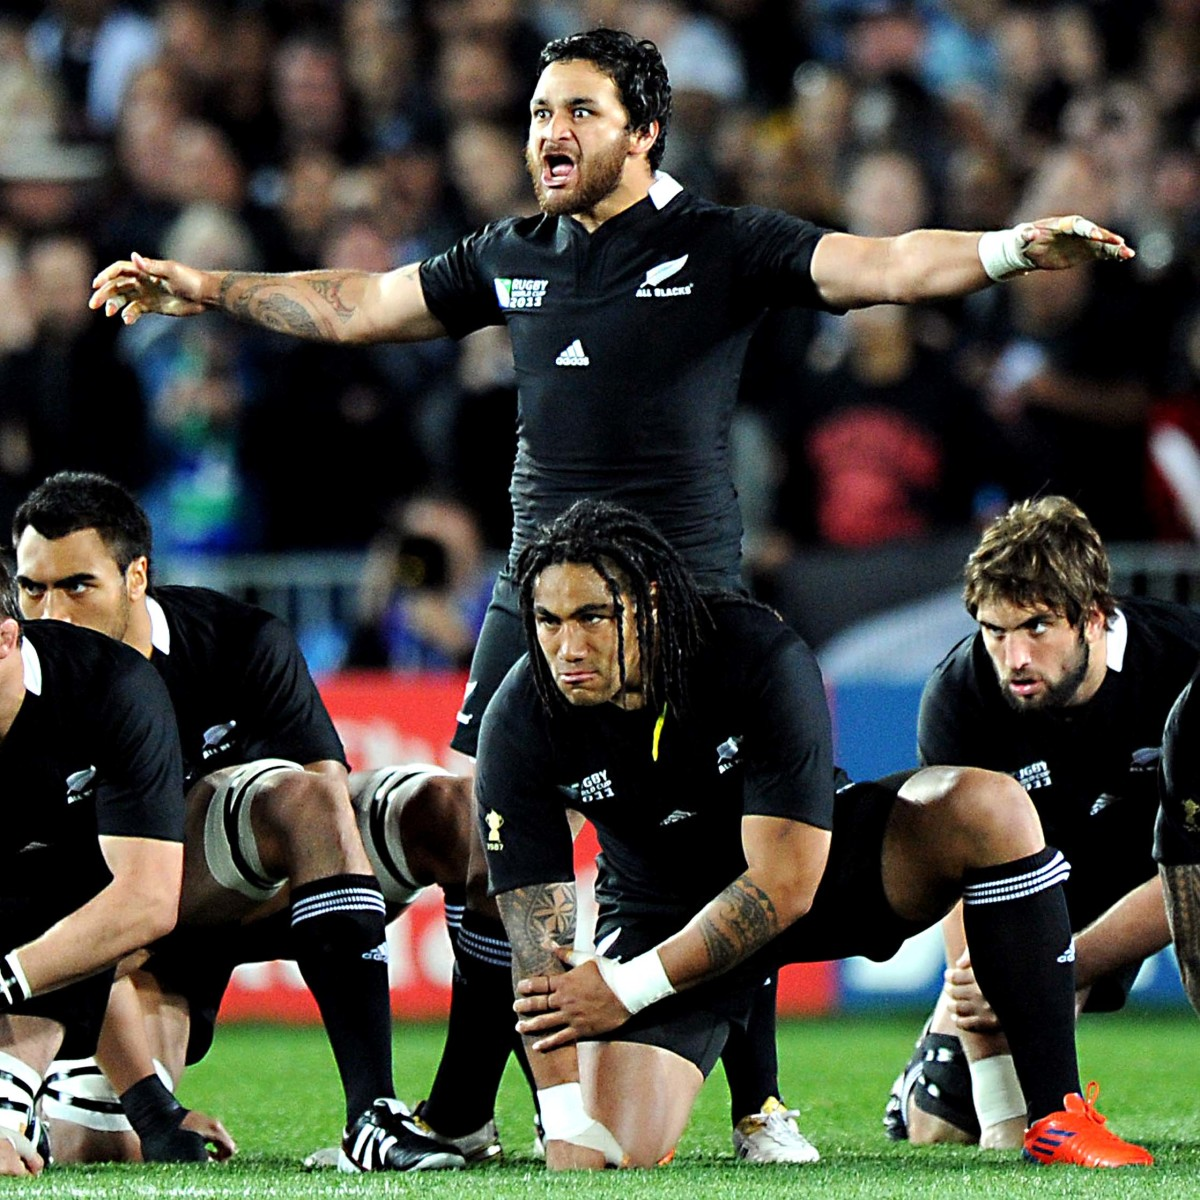 One player takes the lead in marshalling the performance of the haka